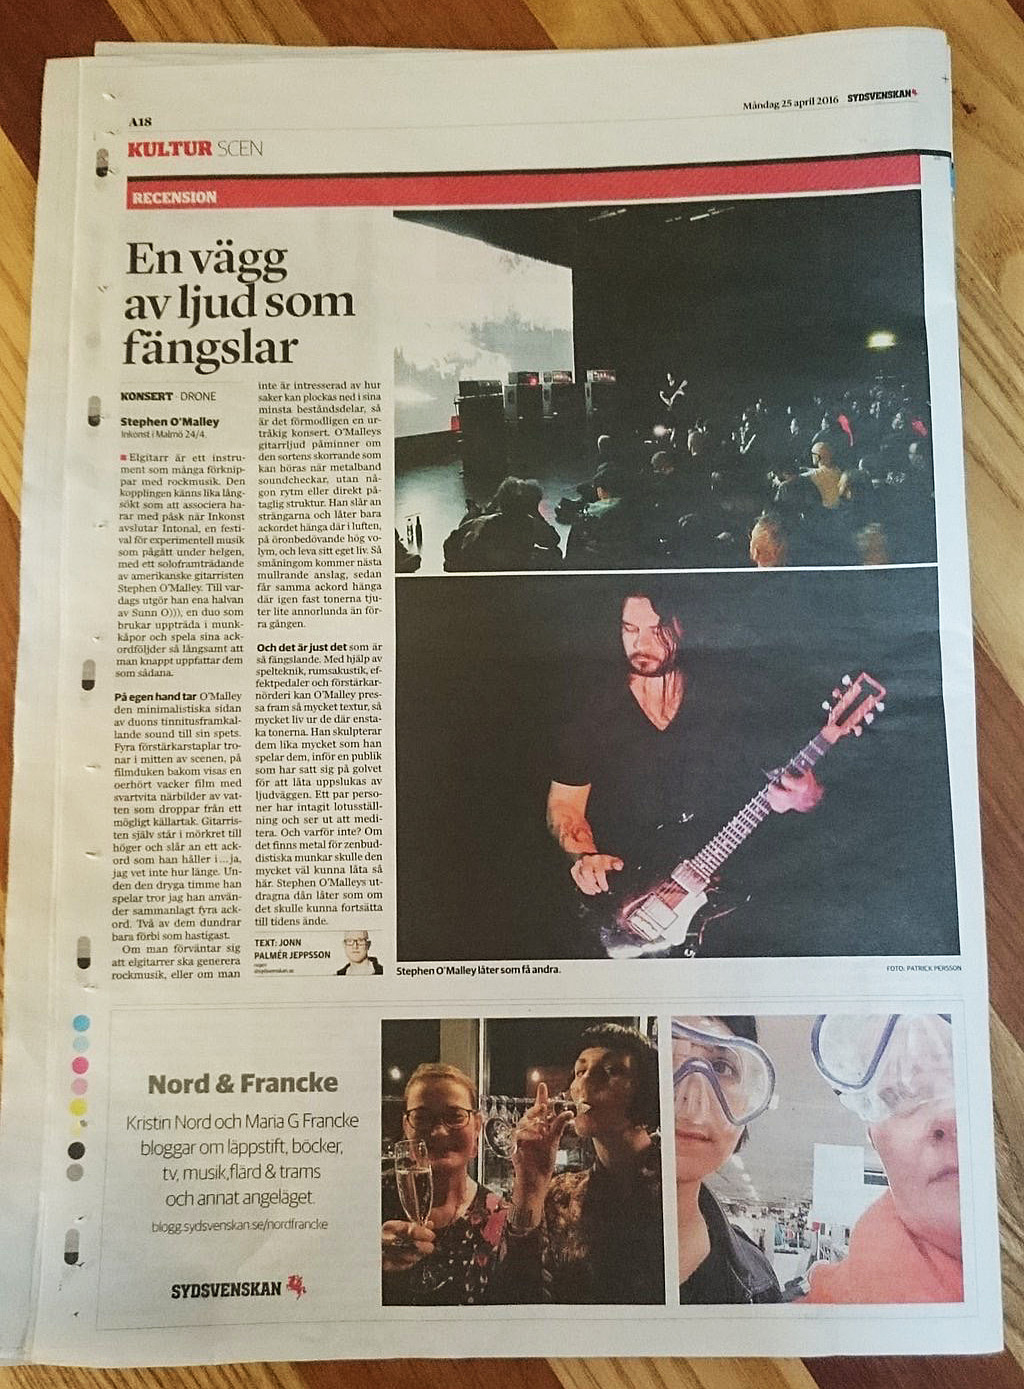 Sydsvenskan's review of my solo concert at Intone, Malmö 24 April 2016